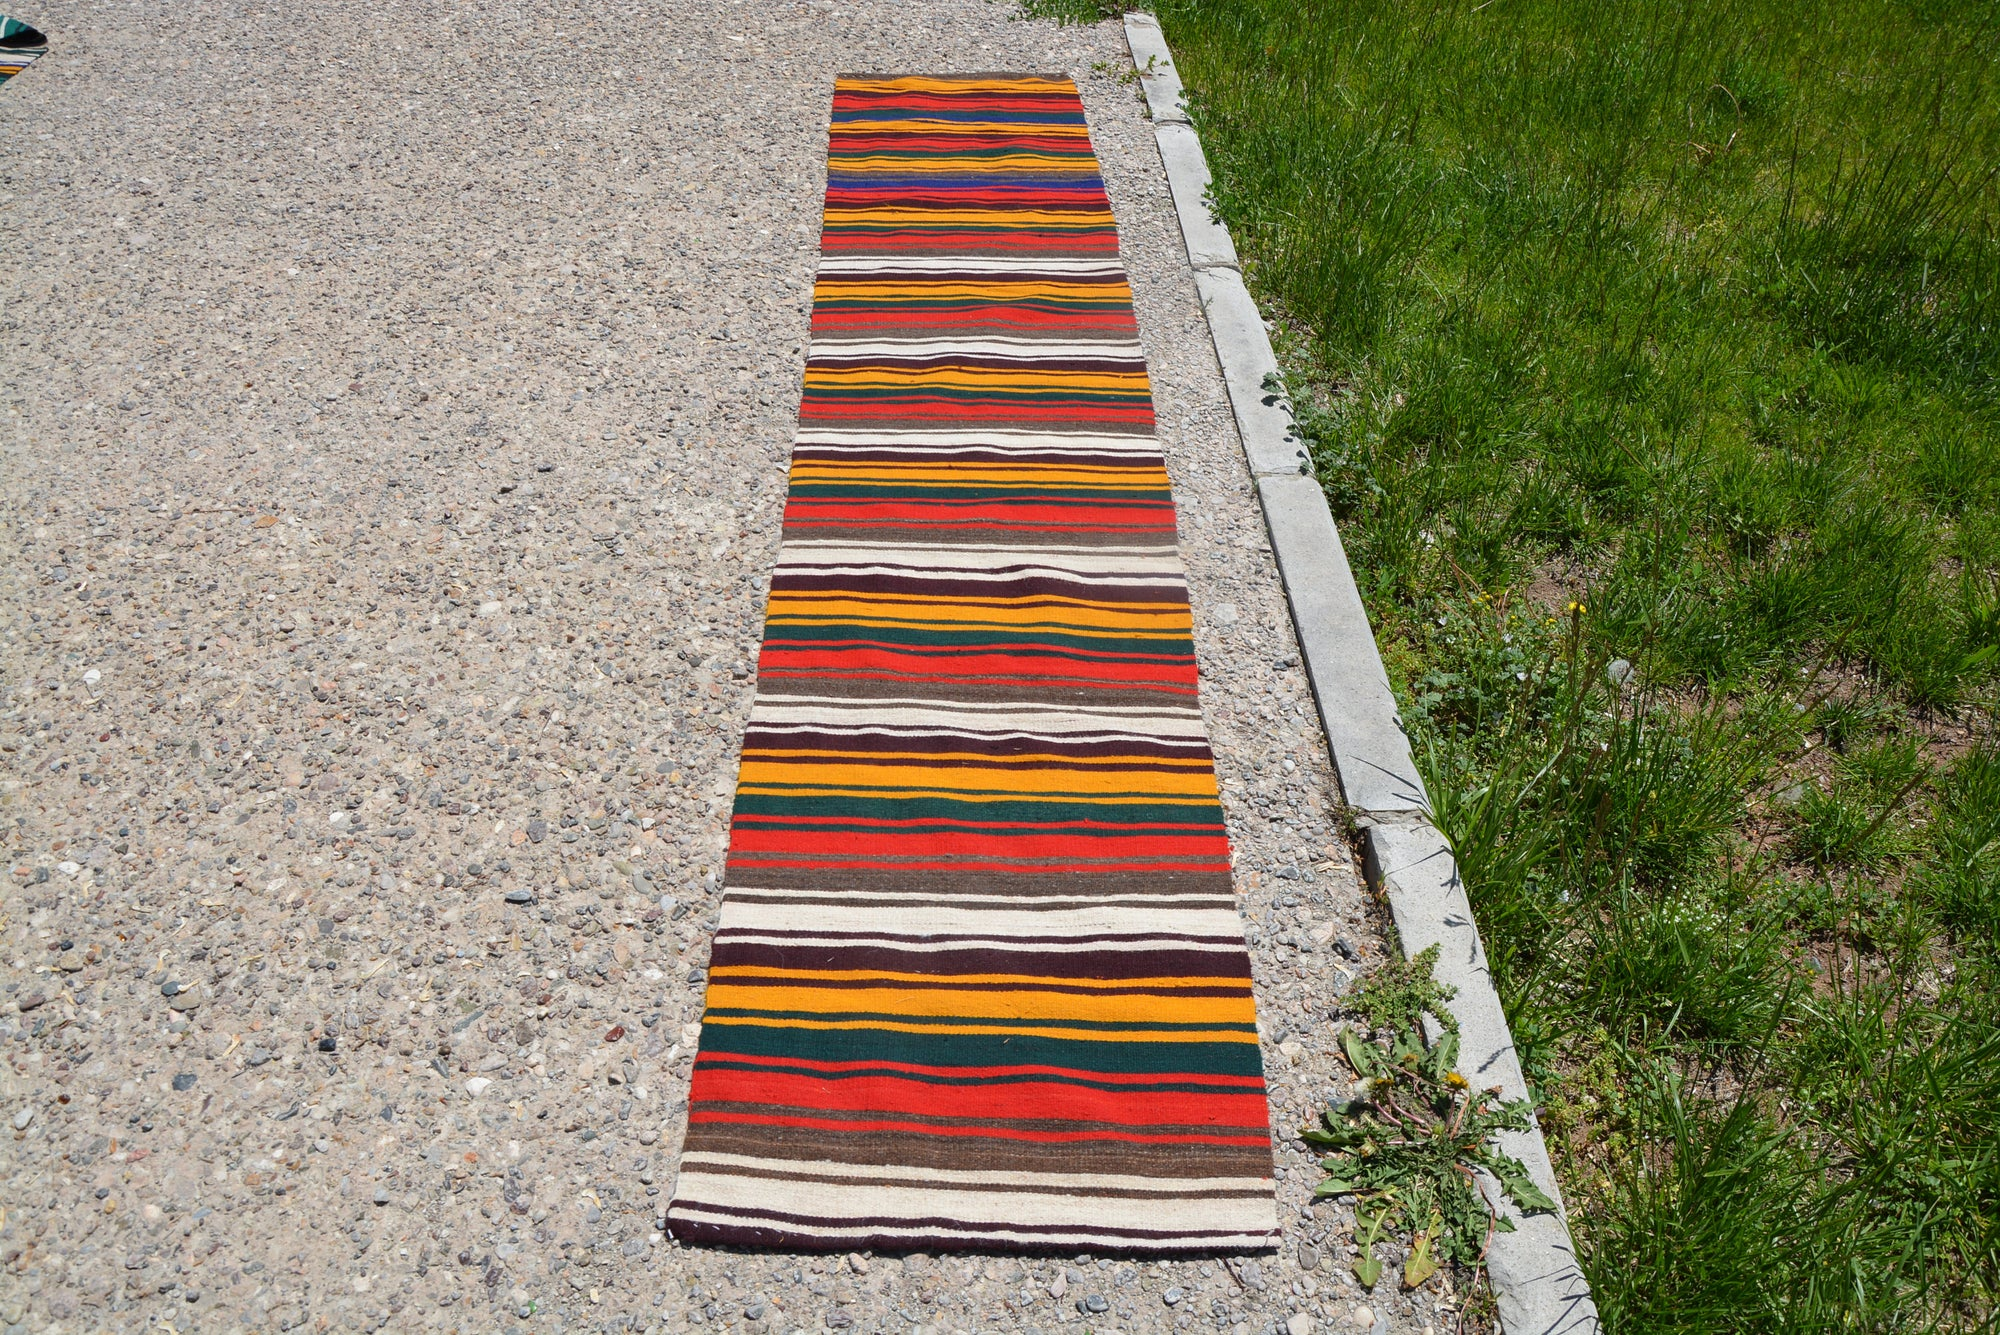 Antique Runner Small Oushak Rugs, Pastel Rug, Ethnic Rug, Carpet Rug, Faded Rug, Small Striped Rug, Turkish Rug,      1.8 x 9.7 Feet LQ264